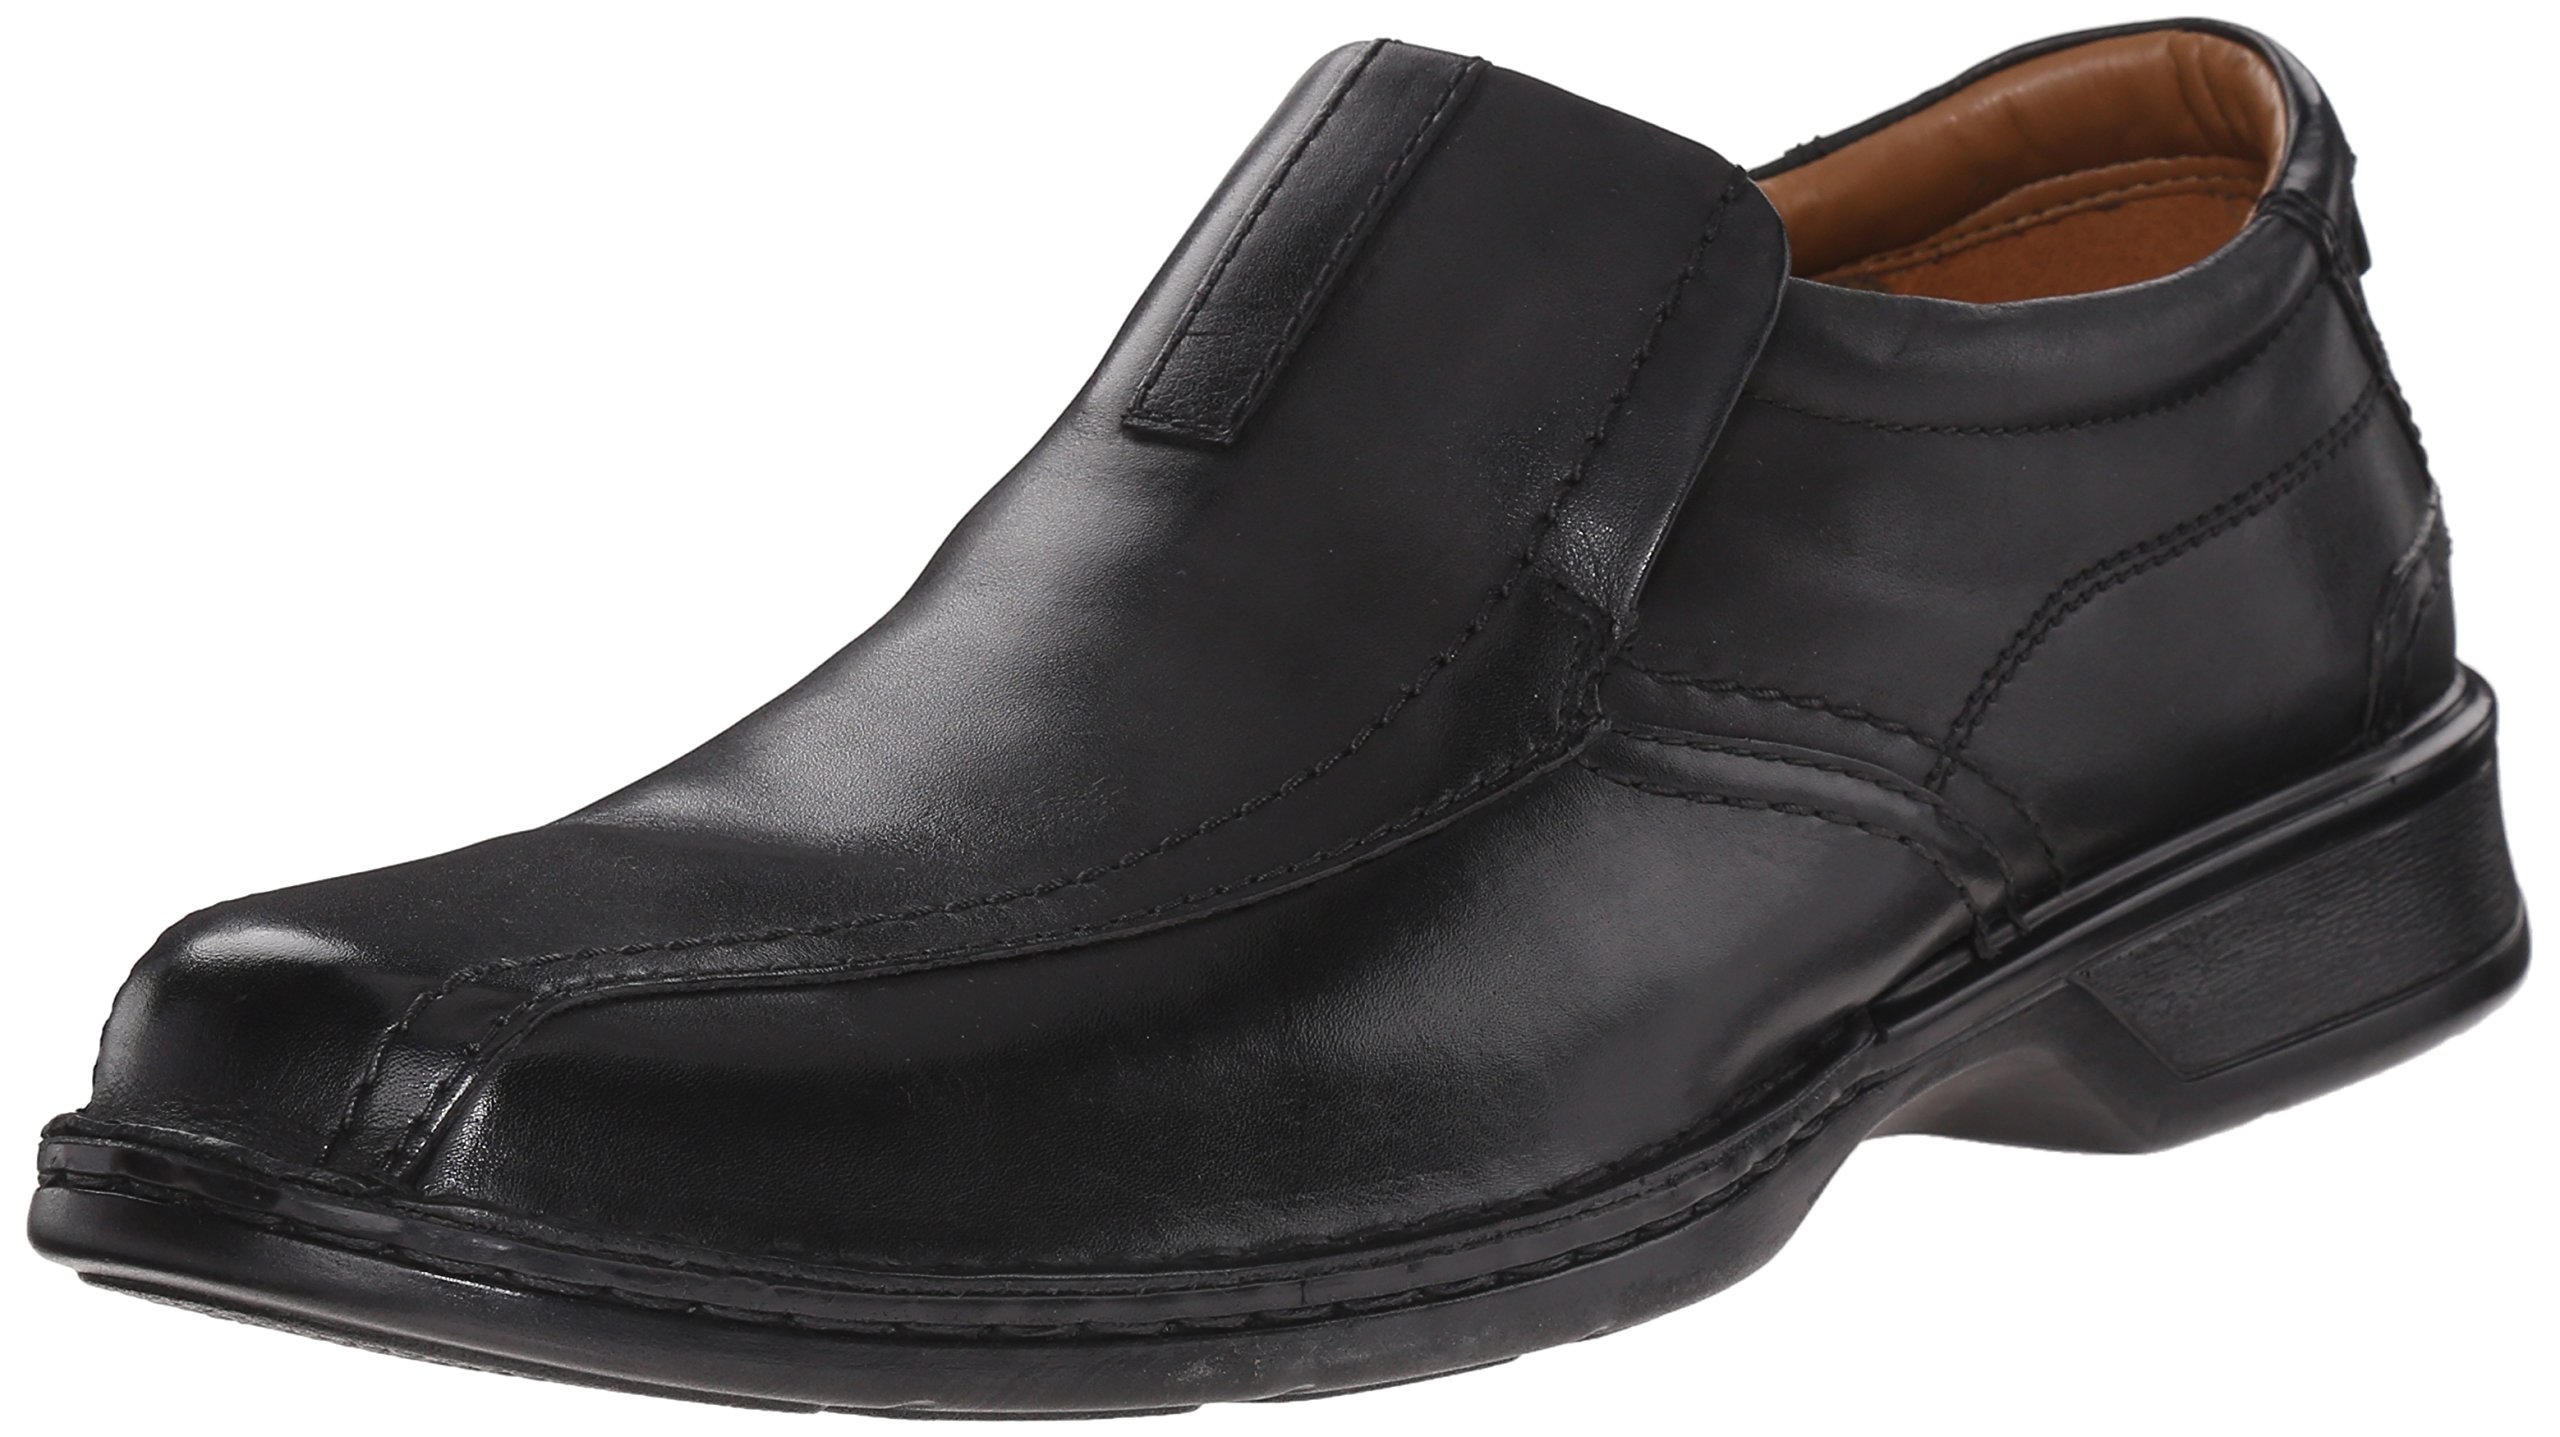 Clarks Escalade Step Loafer Leather